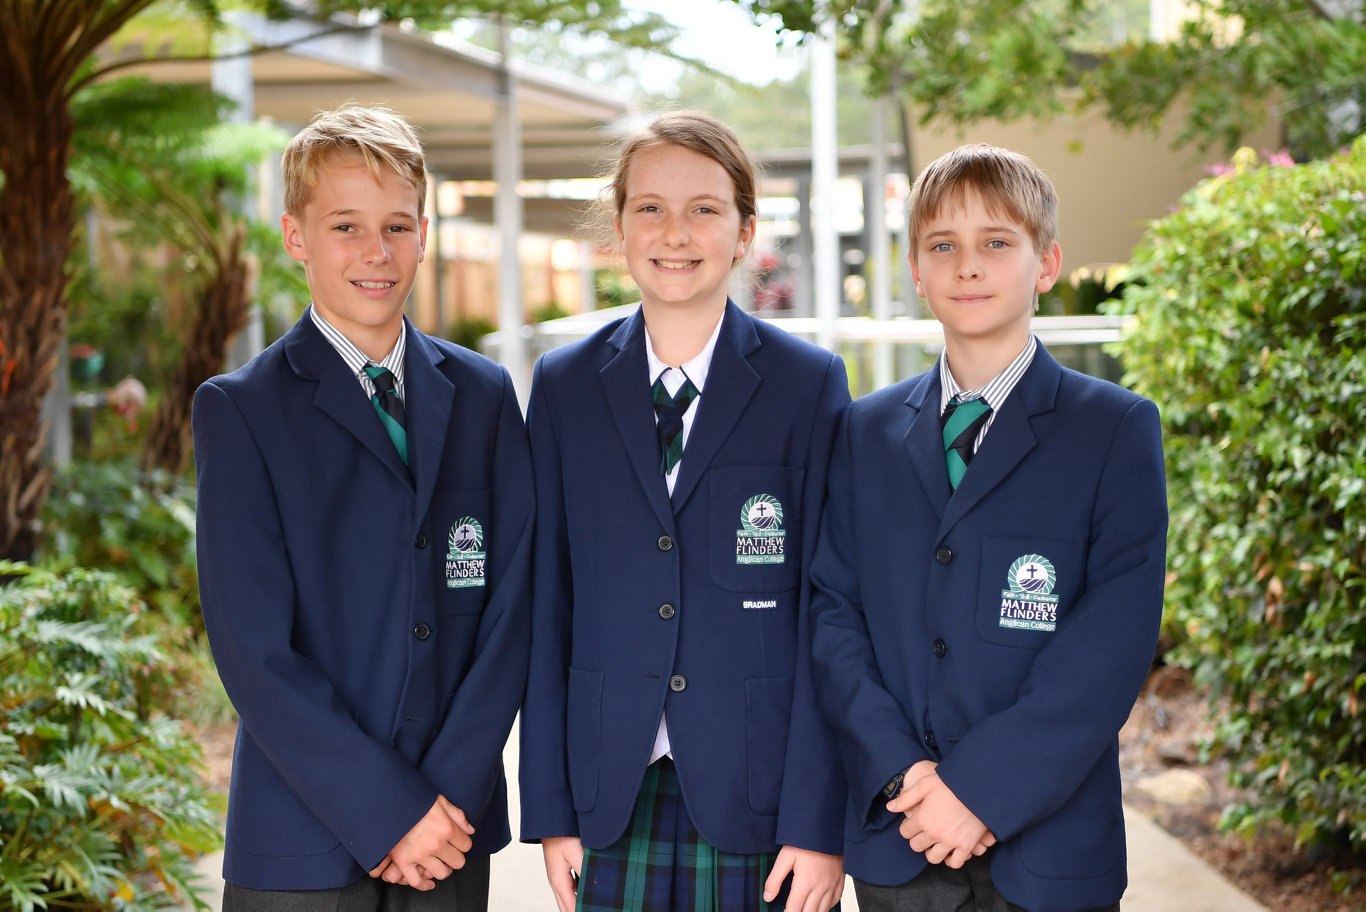 NAPLAN: Students from Matthew Flinders College who participate in Naplan testing are Tom Basford, Elizabeth Setchell and Aidan Chumbley. Photo Patrick Woods / Sunshine Coast Daily